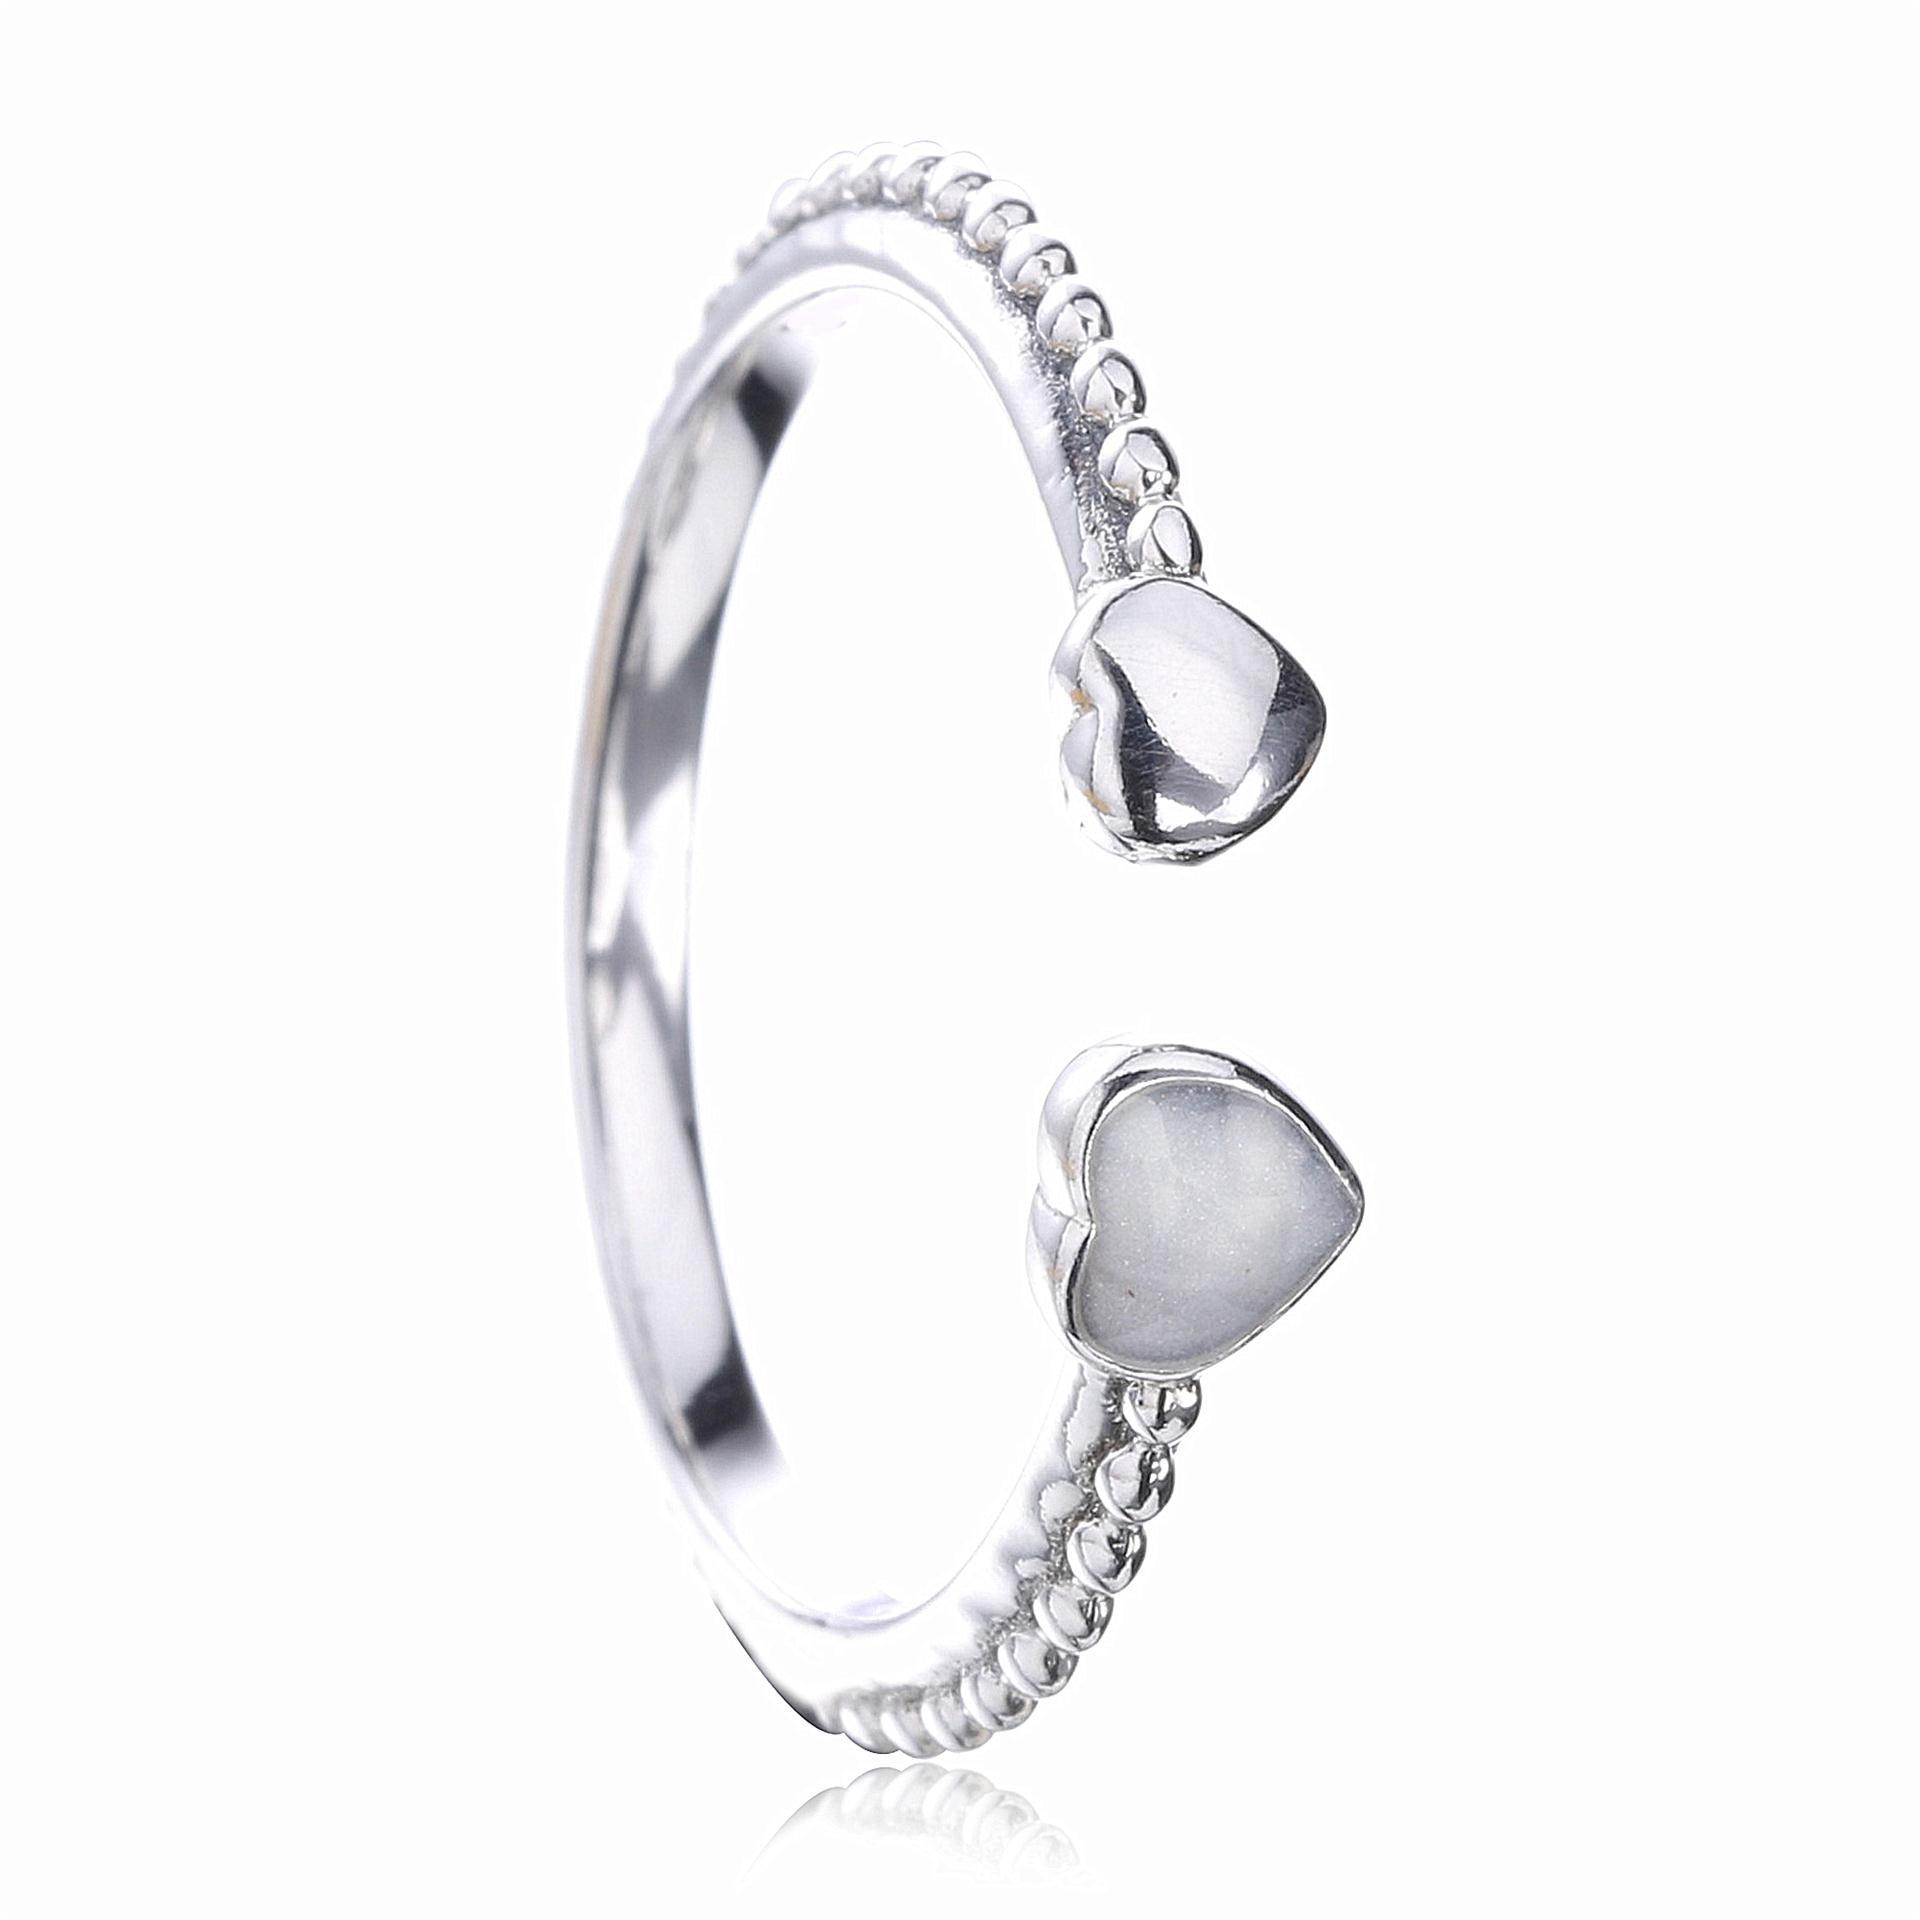 Authentic 925 Sterling Silver Ring Hearts Of Love Pandora